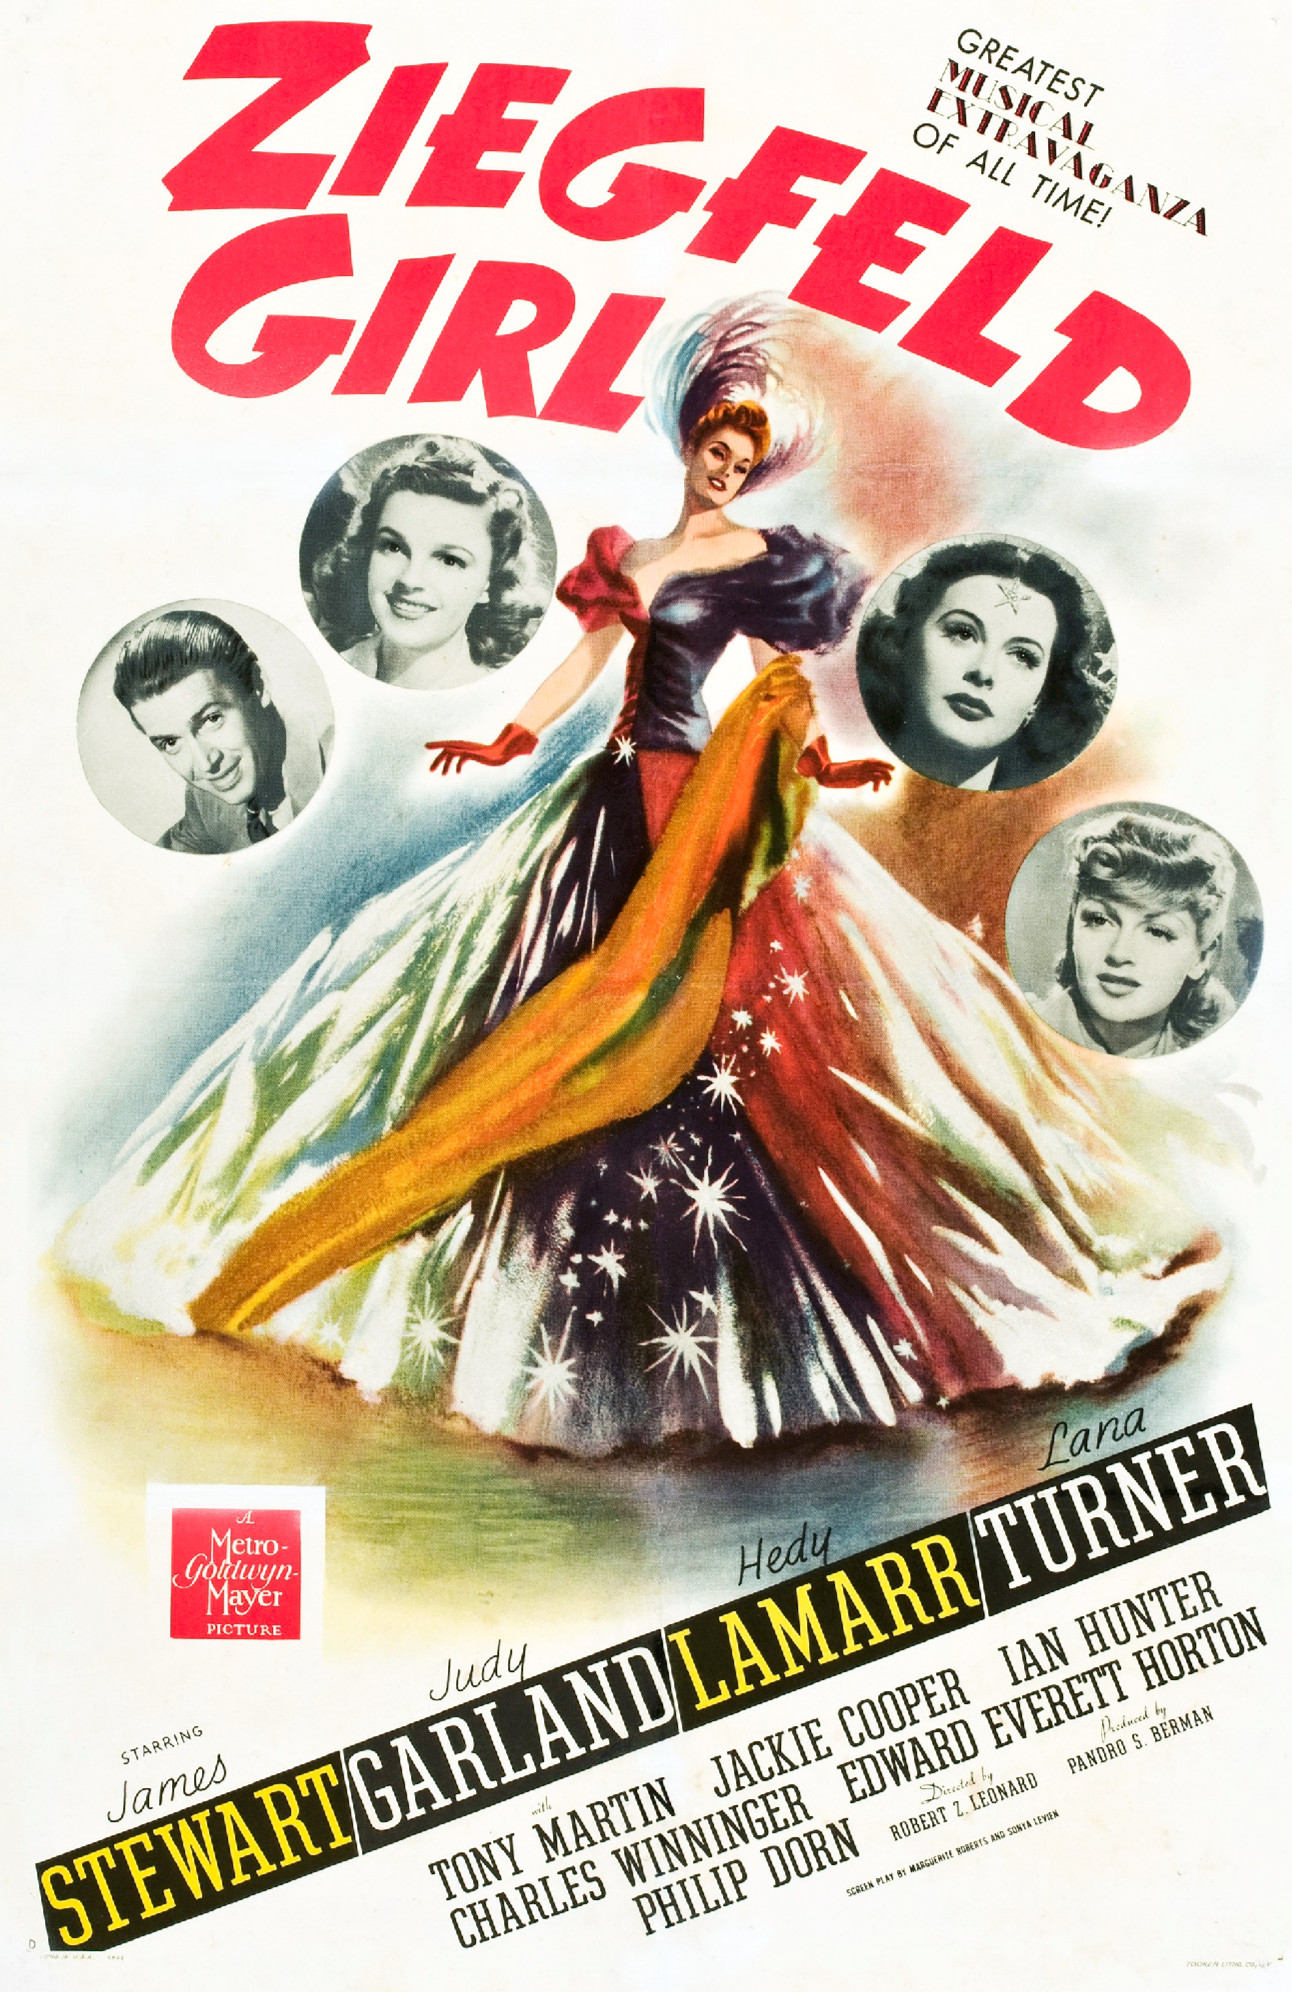 Ziegfeld Girl (film) - Wikipedia